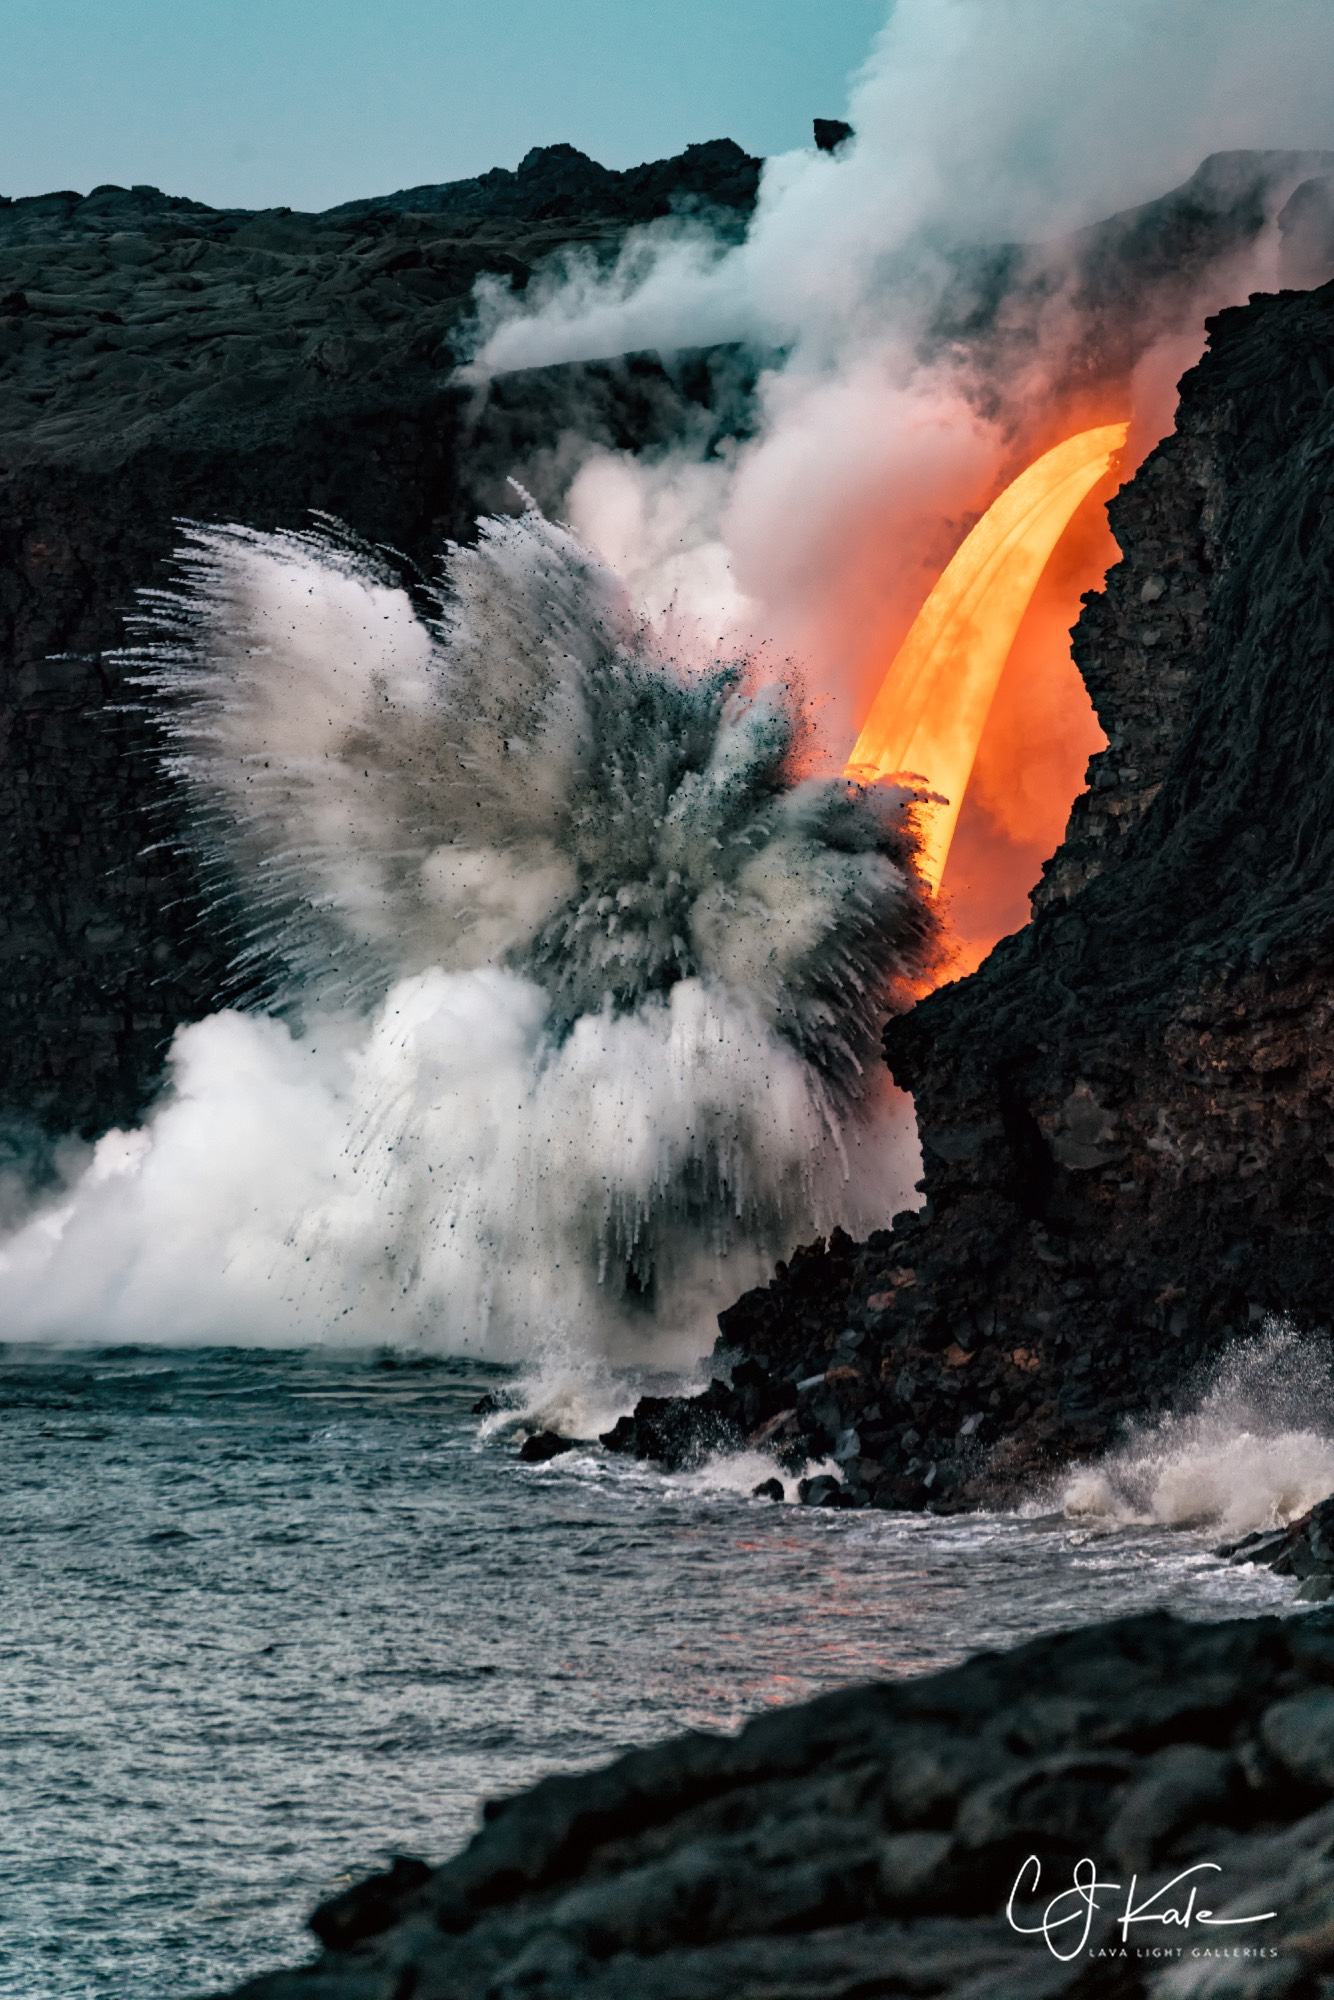 Major explosion as the fire hose hits the ocean.